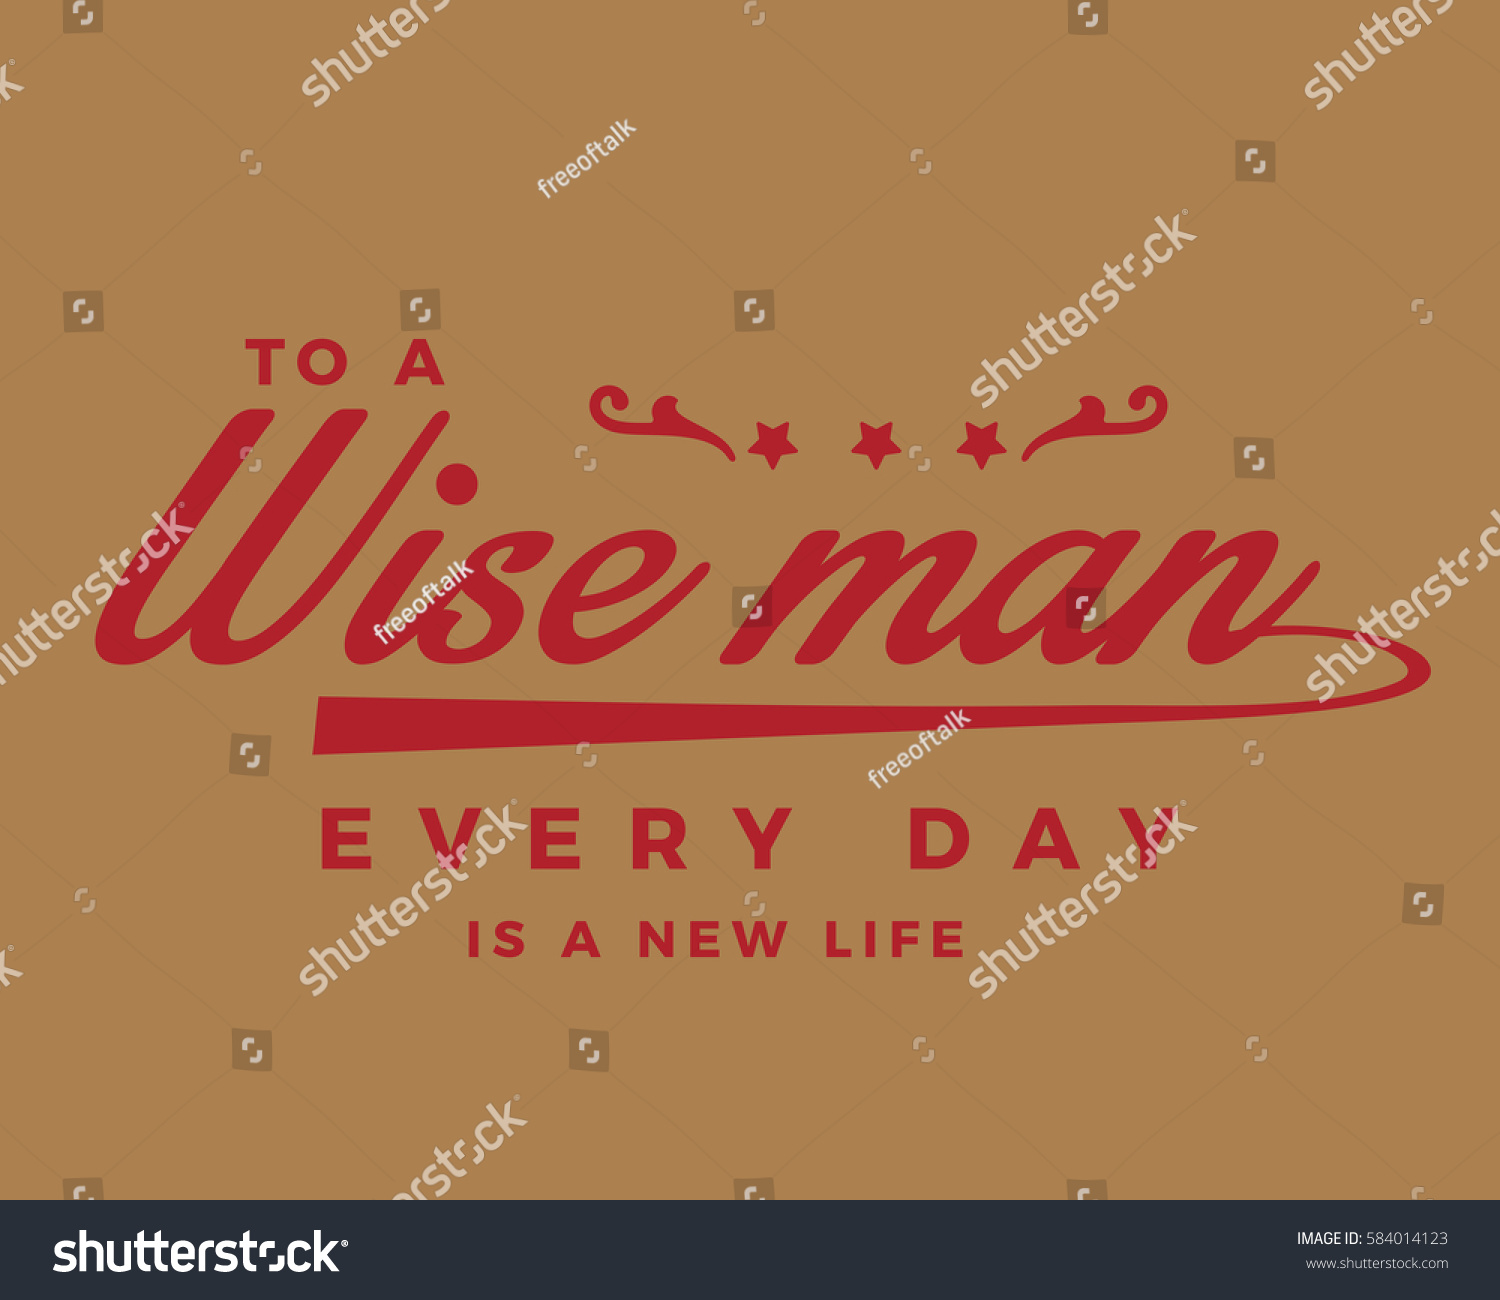 To A Wise Man Every Day Is A New Life. Life Quote